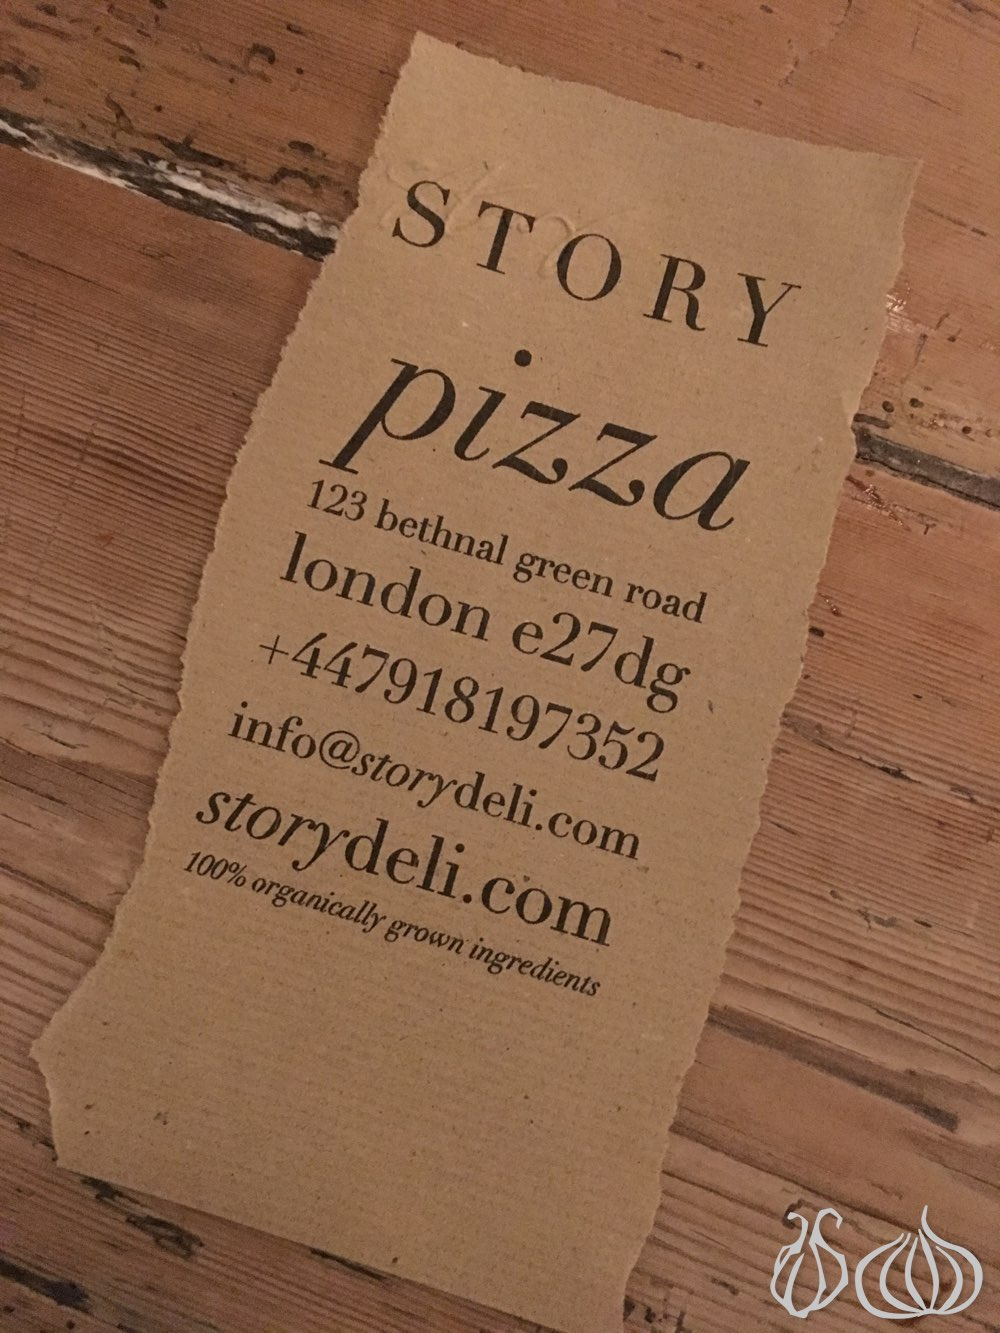 story-deli-pizza-london-nogarlicnoonions352016-02-01-10-01-13